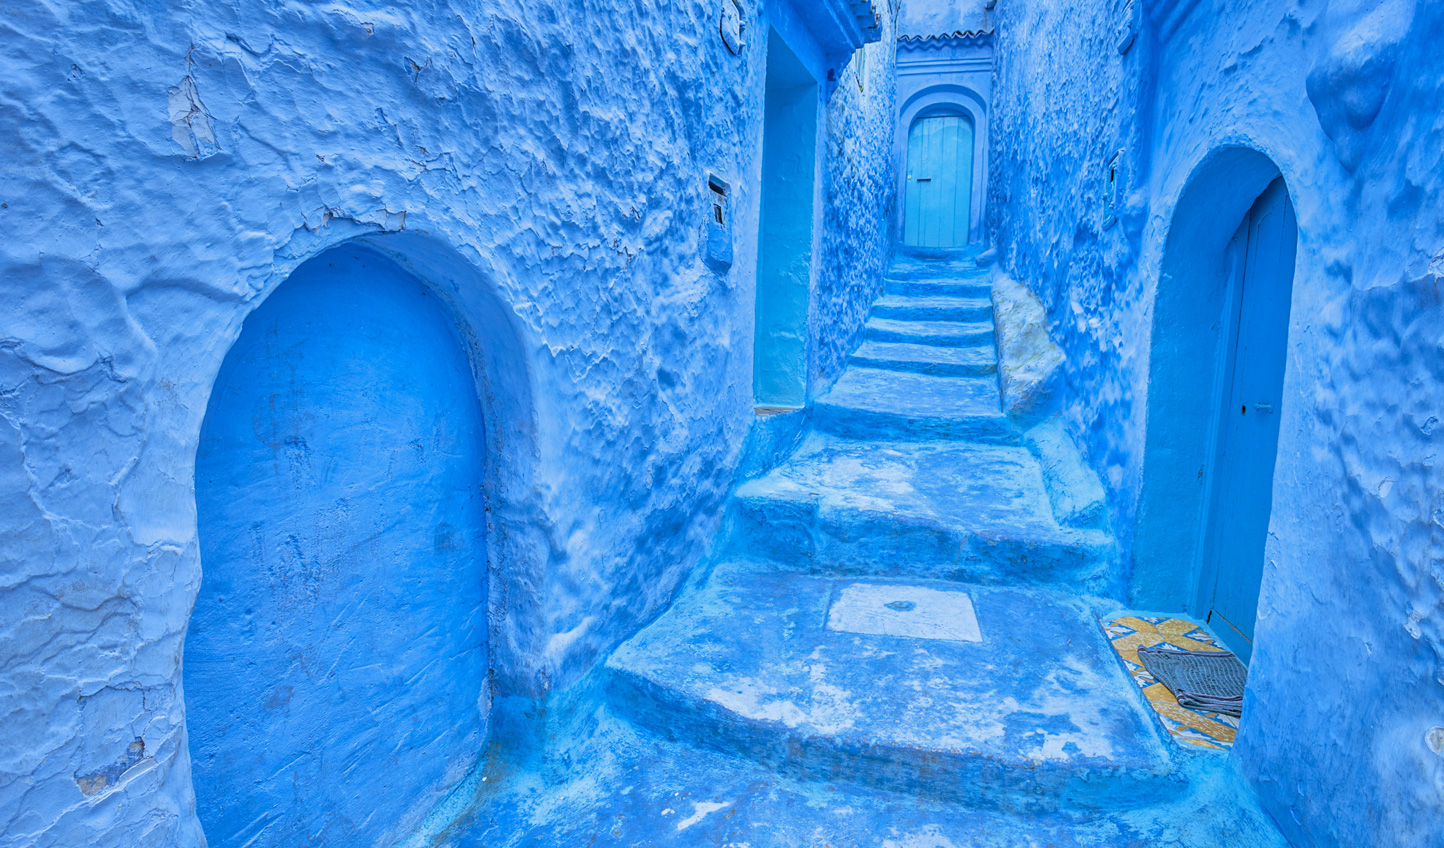 Stroll through the blue-hued streets